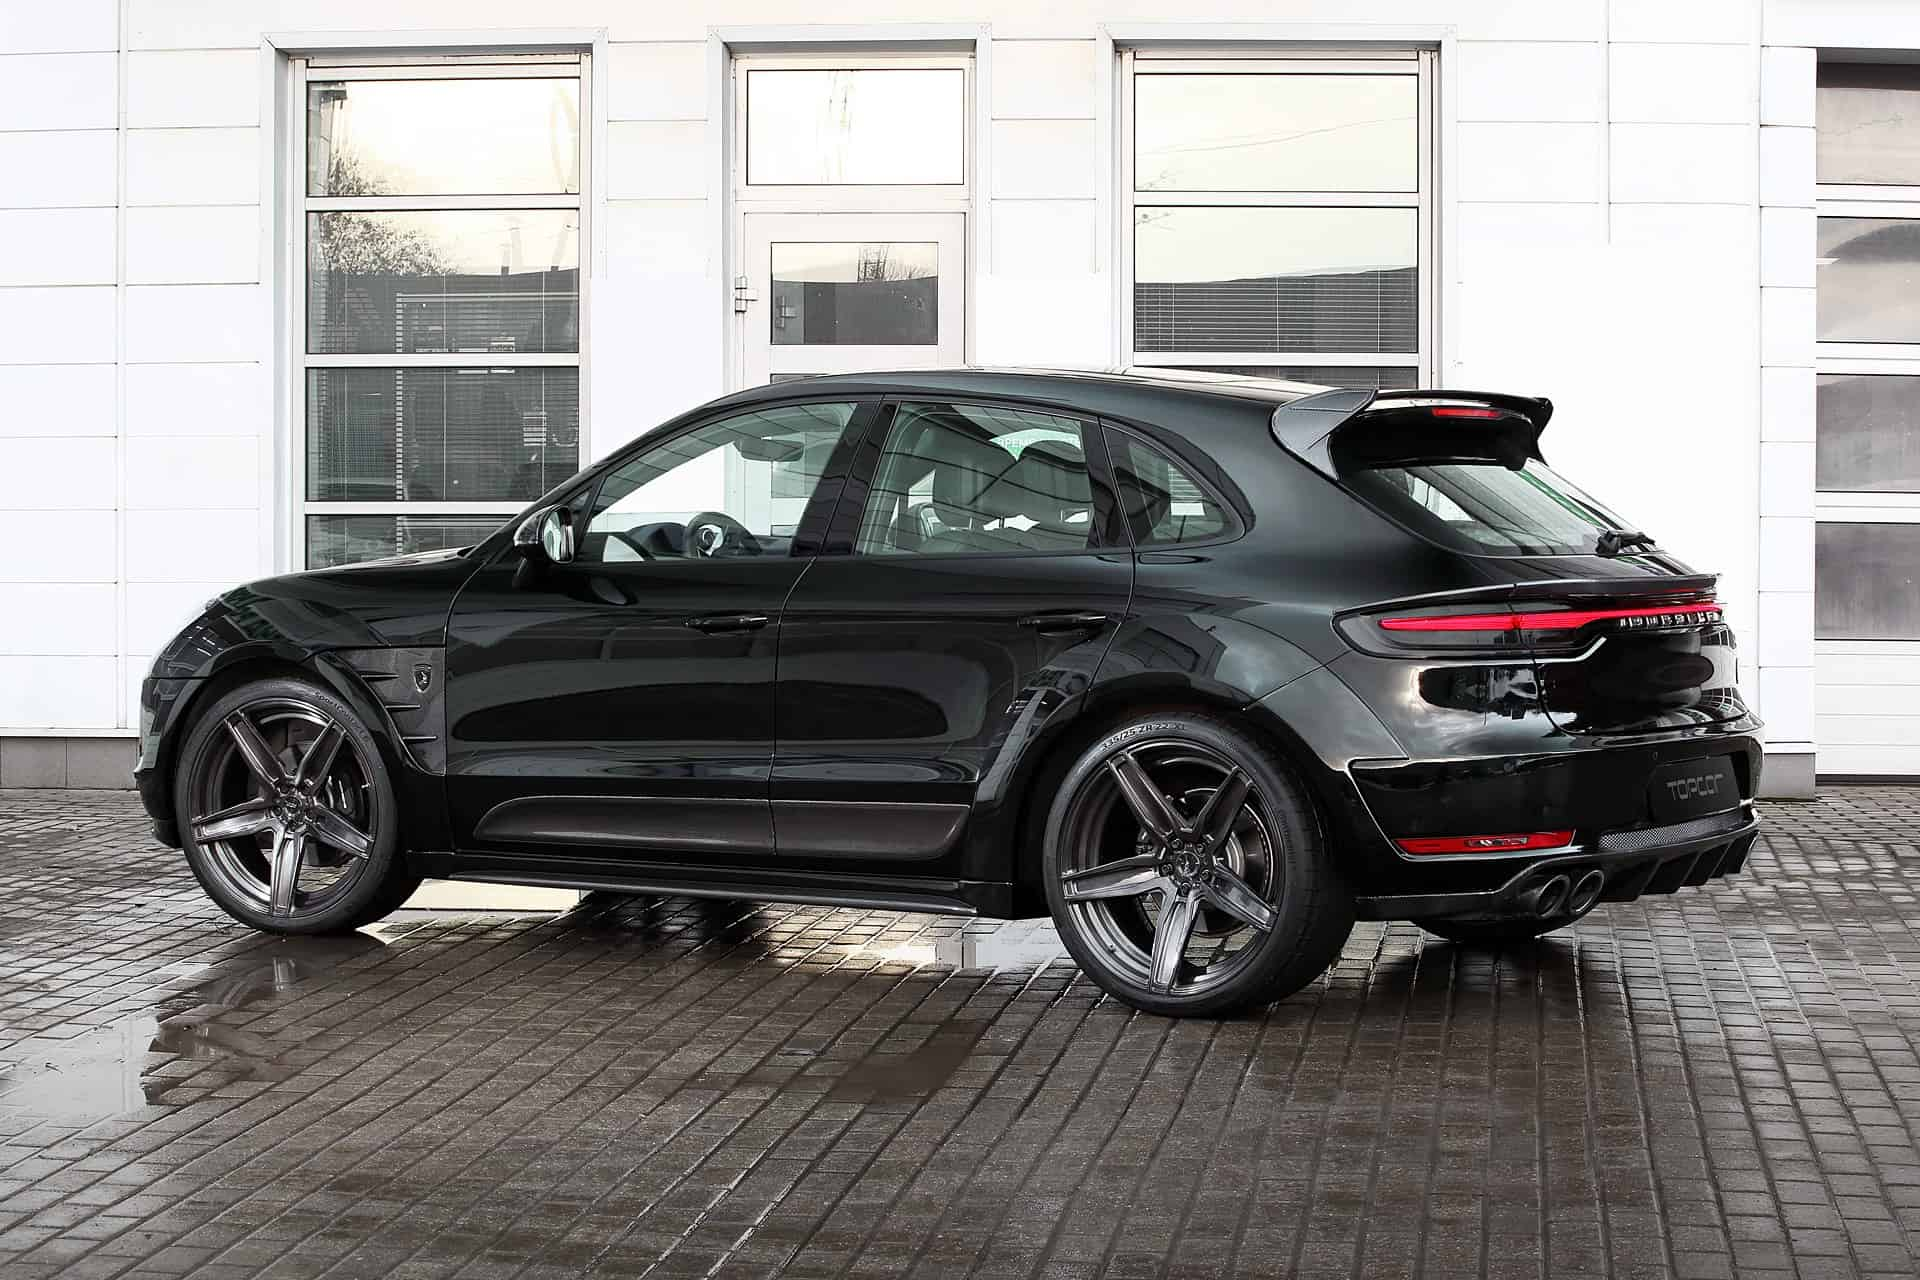 2020 Porsche Macan - TOPCAR Body Kit